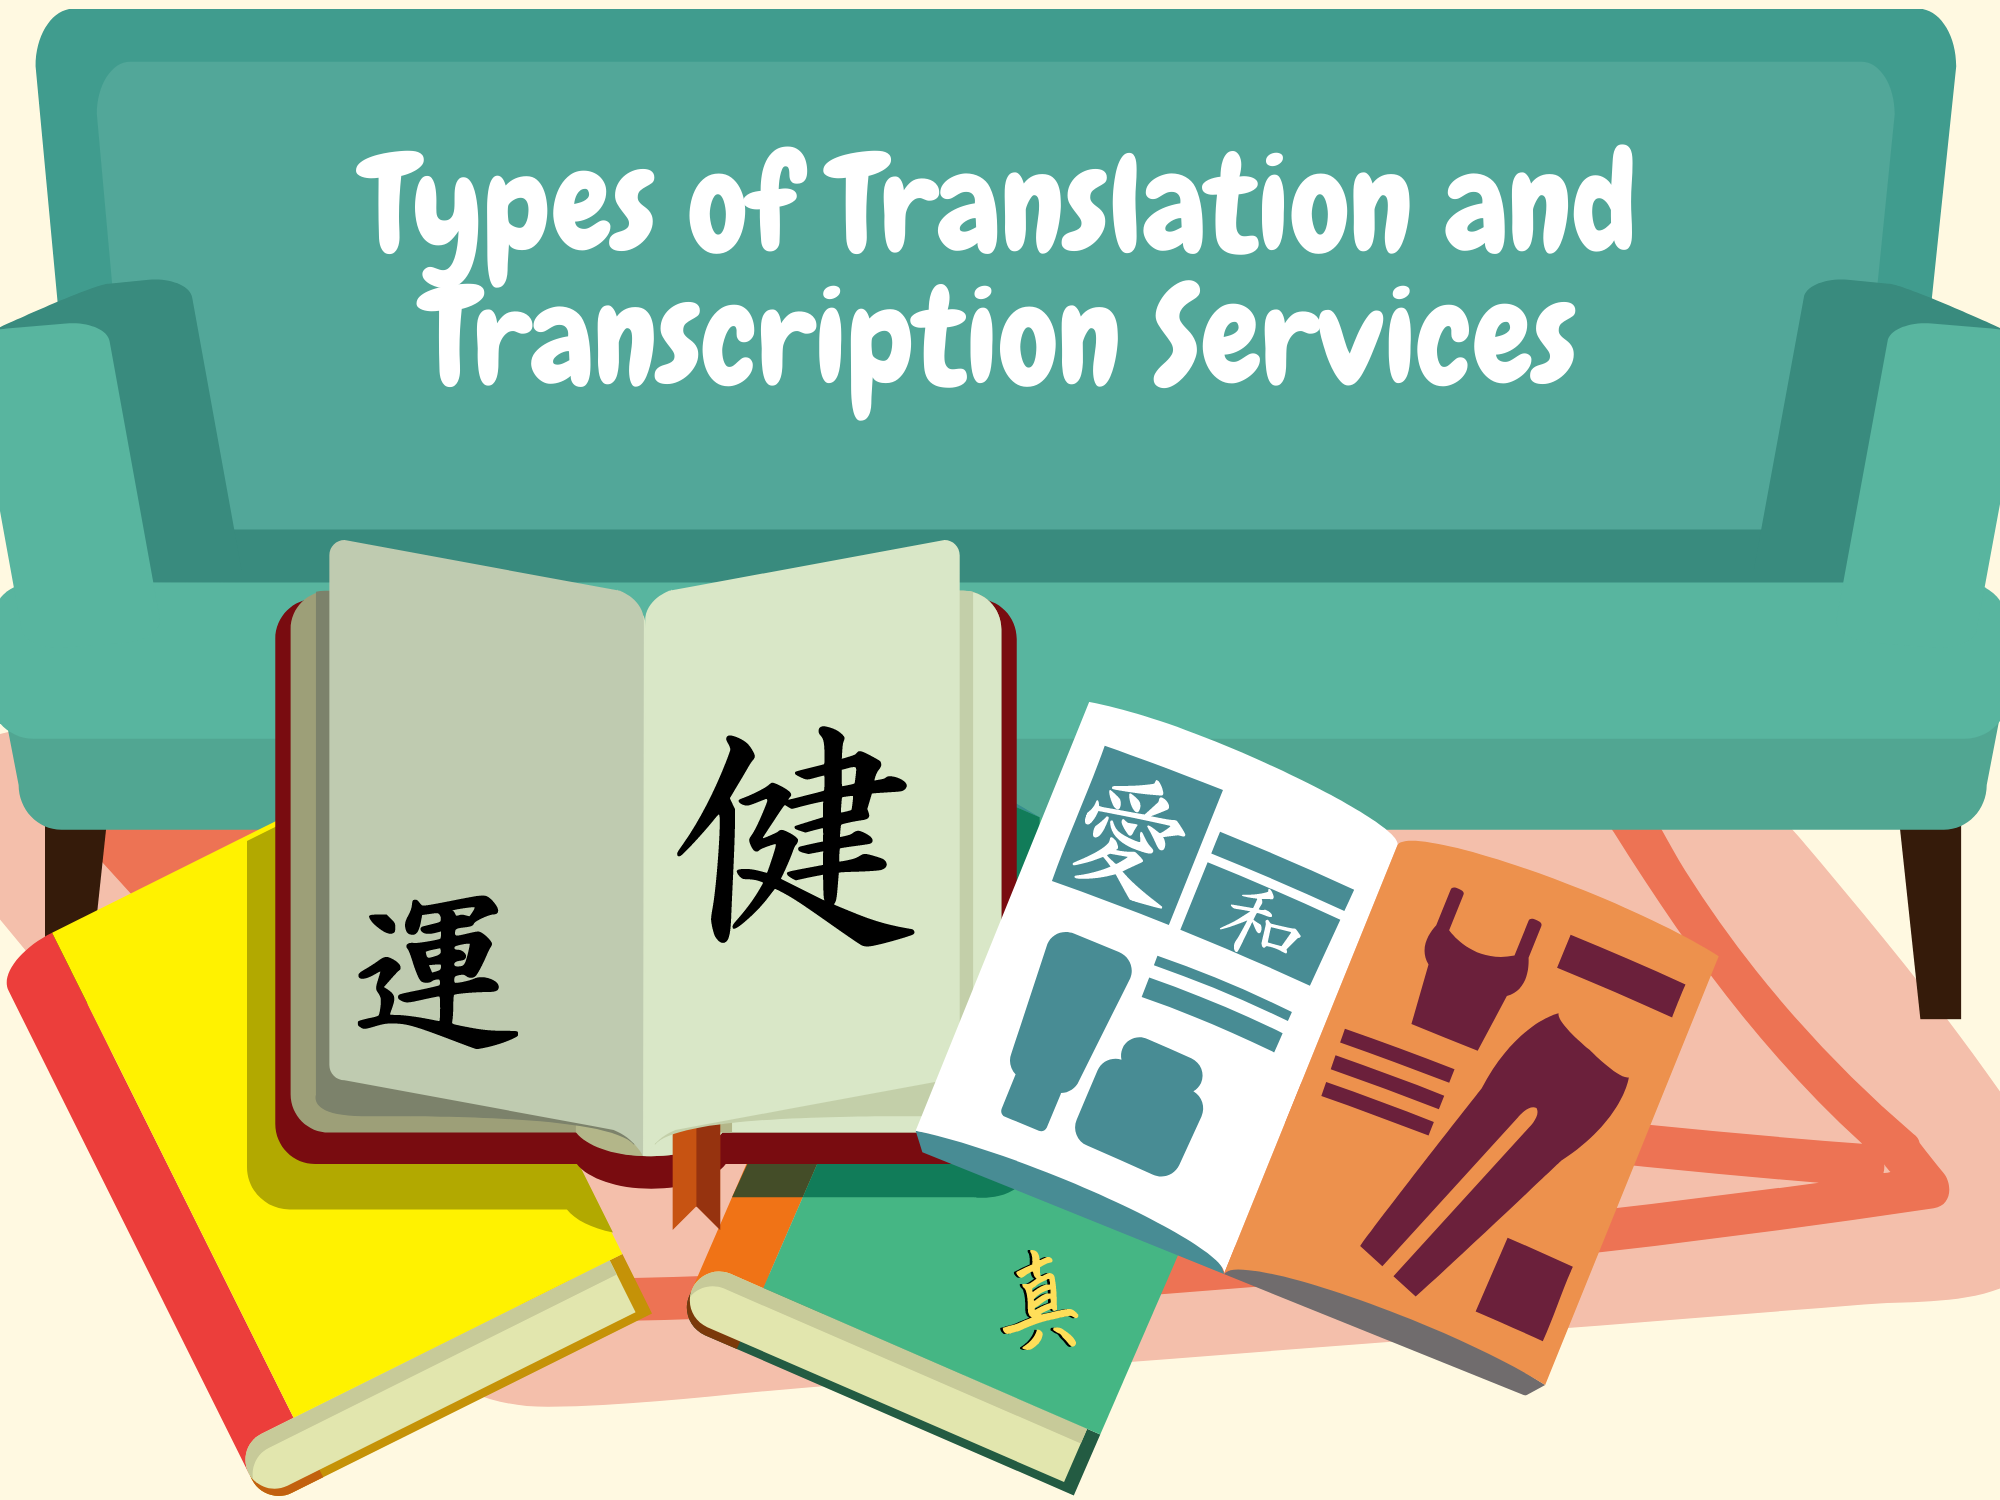 Types-of-Translation-and-Transcription-Services